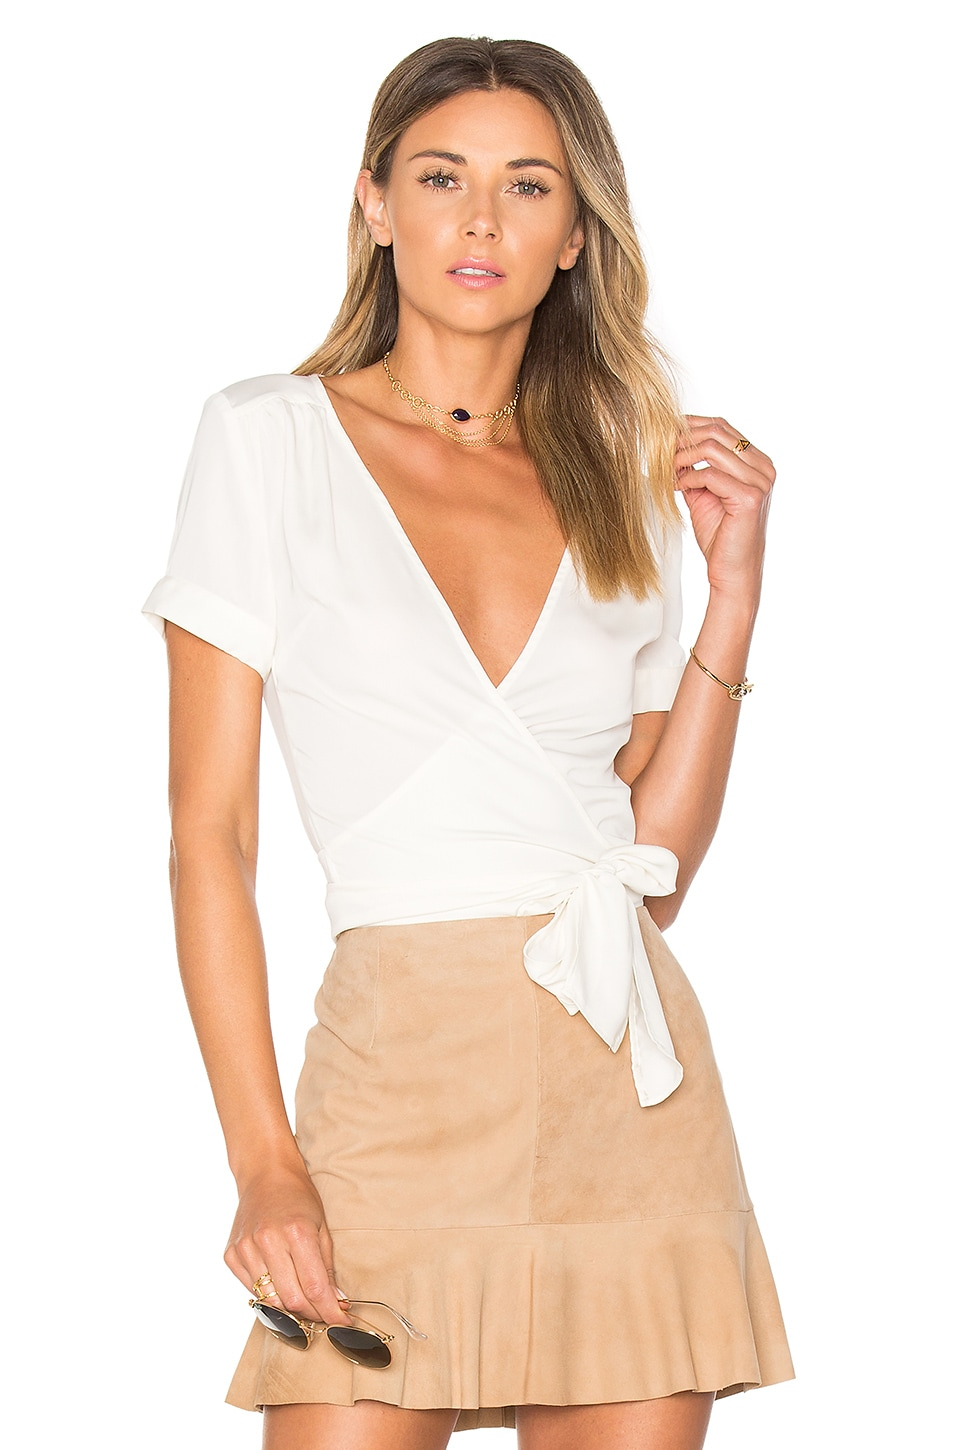 The Short Sleeve Wrap Blouse